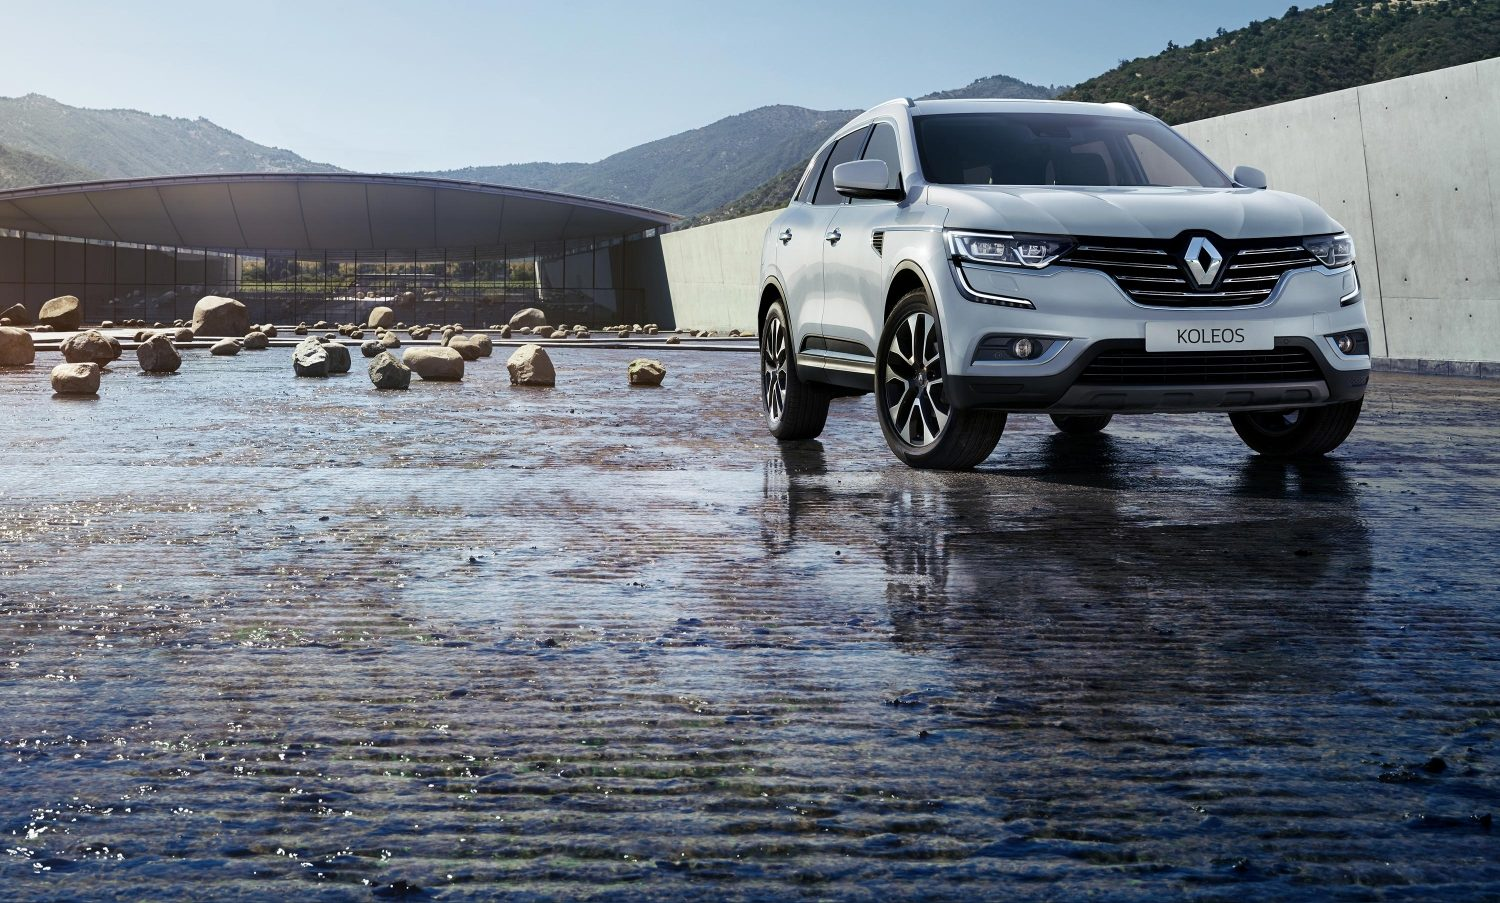 renault-koleos-hzg-ph1-beauty-shot-desktop.jpg.ximg.l_full_m.smart.jpg